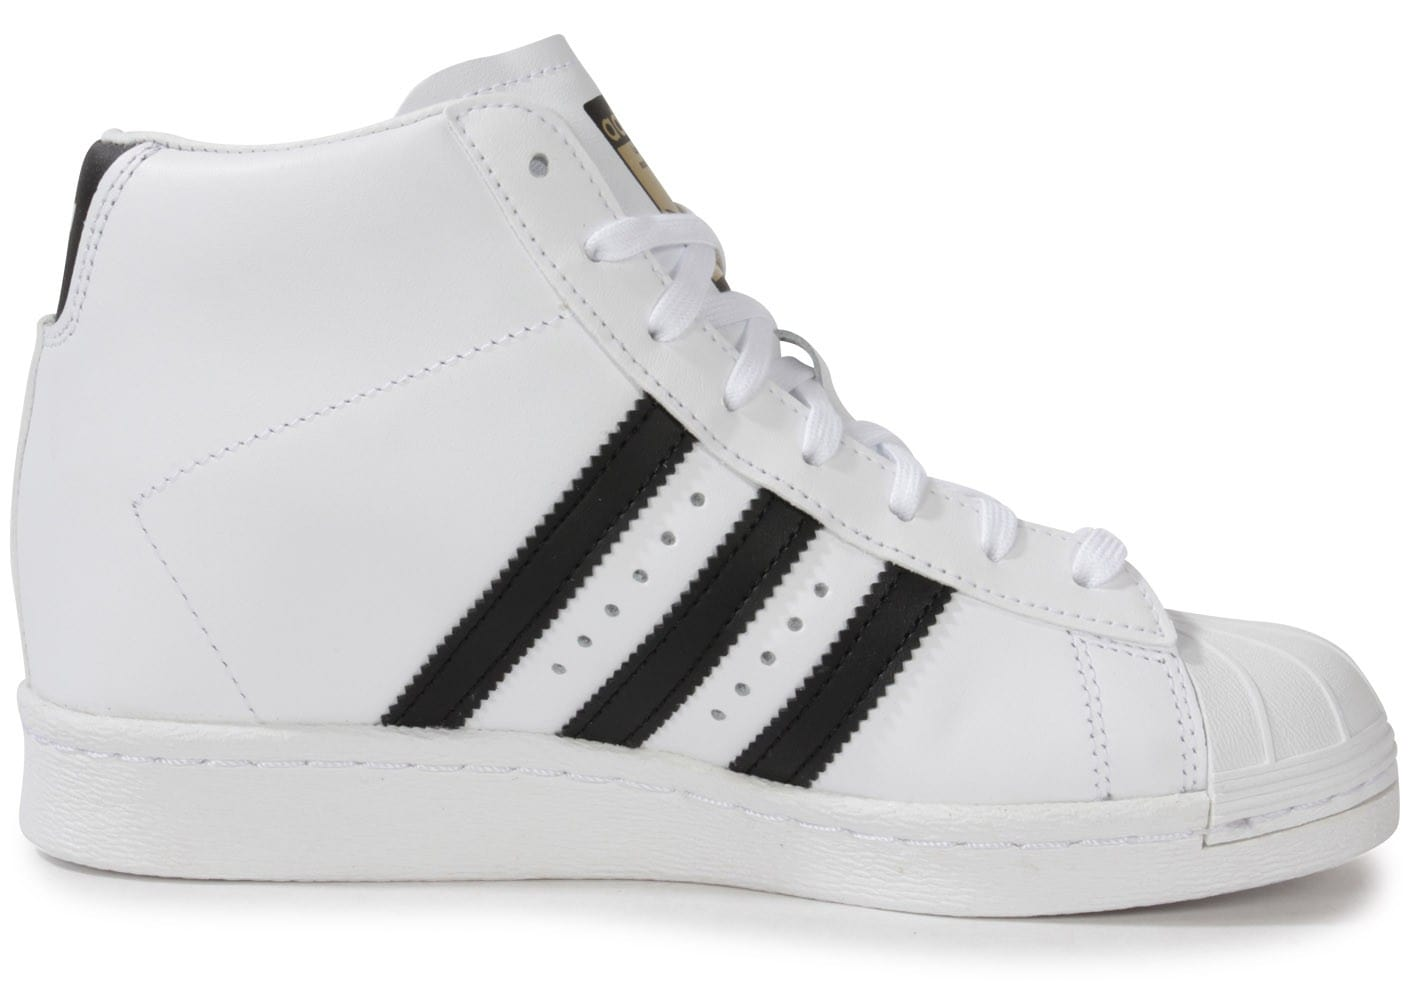 adidas Superstar Up Compensee Blanche - Chaussures adidas ...